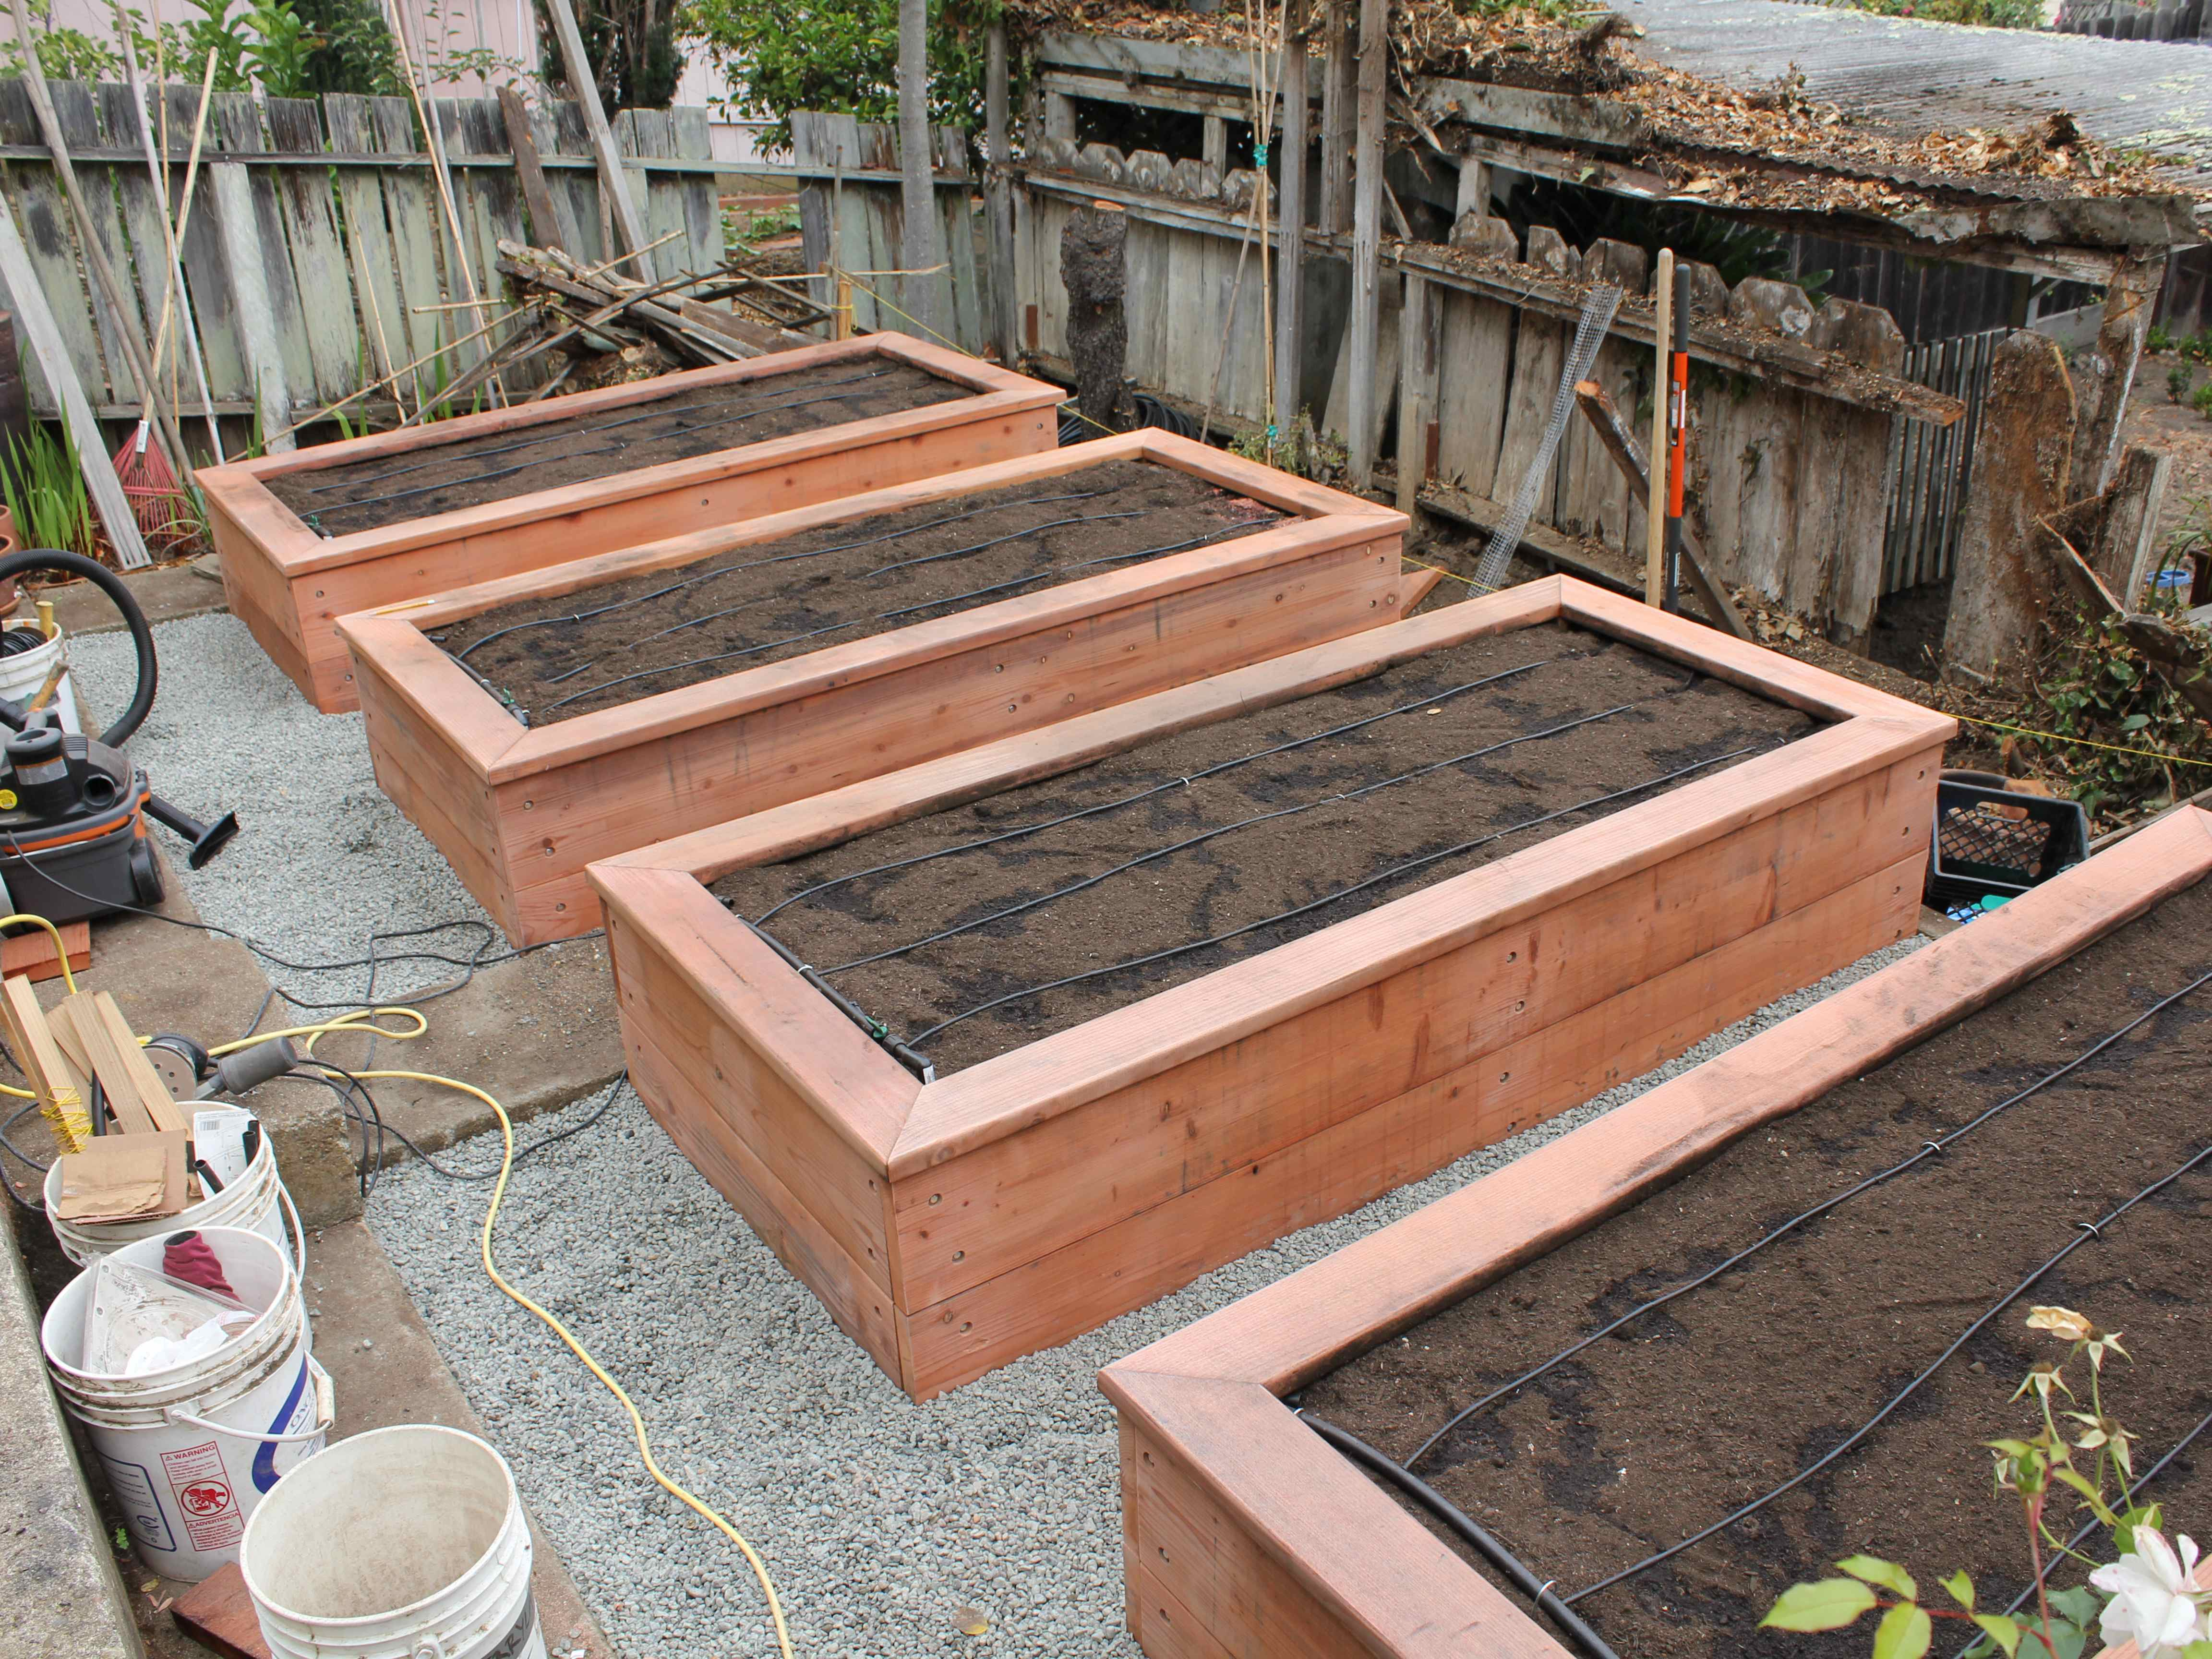 to build garden of a flower box diy cheap easy building raised beds how elegant ideas bed wooden planter